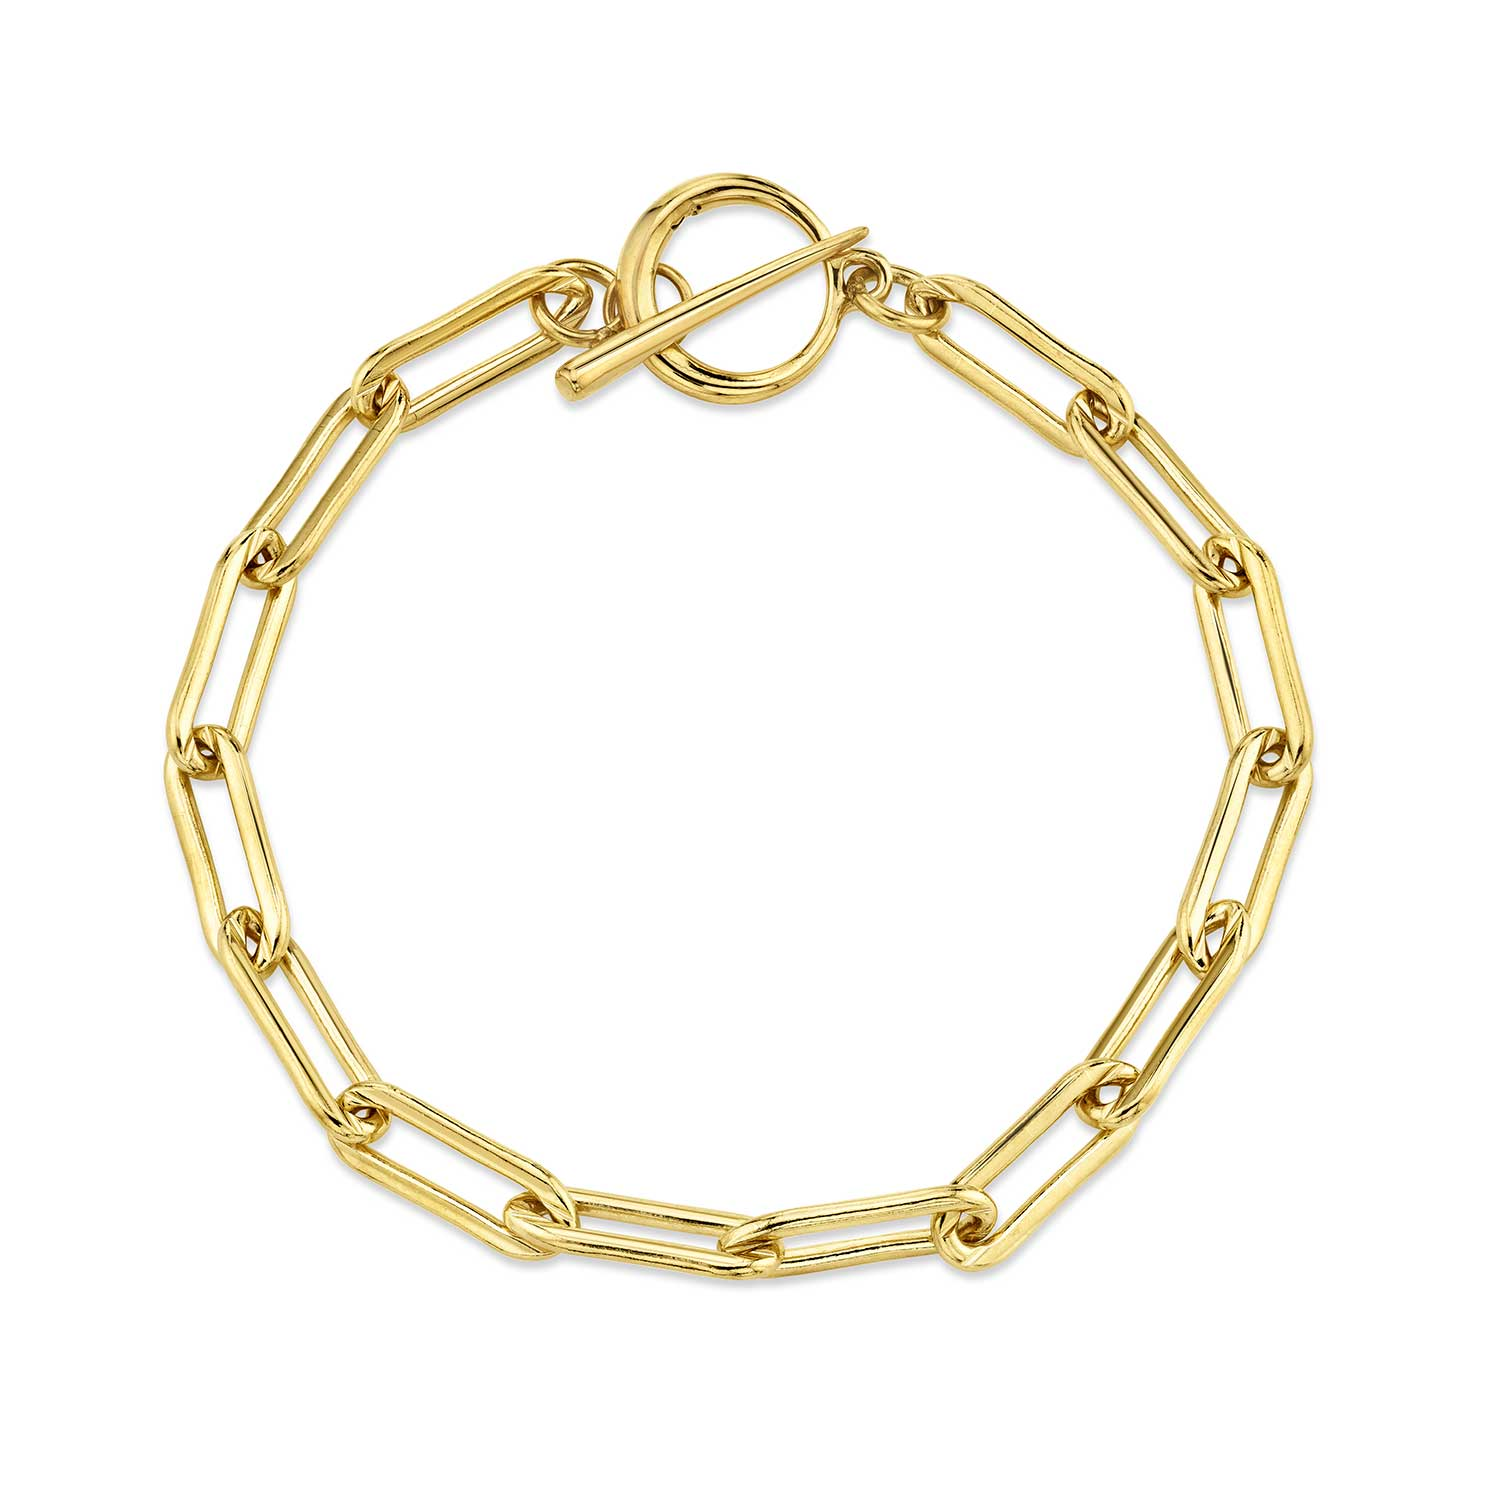 Rectangular Link Chain Bracelet With Tusk Clasp